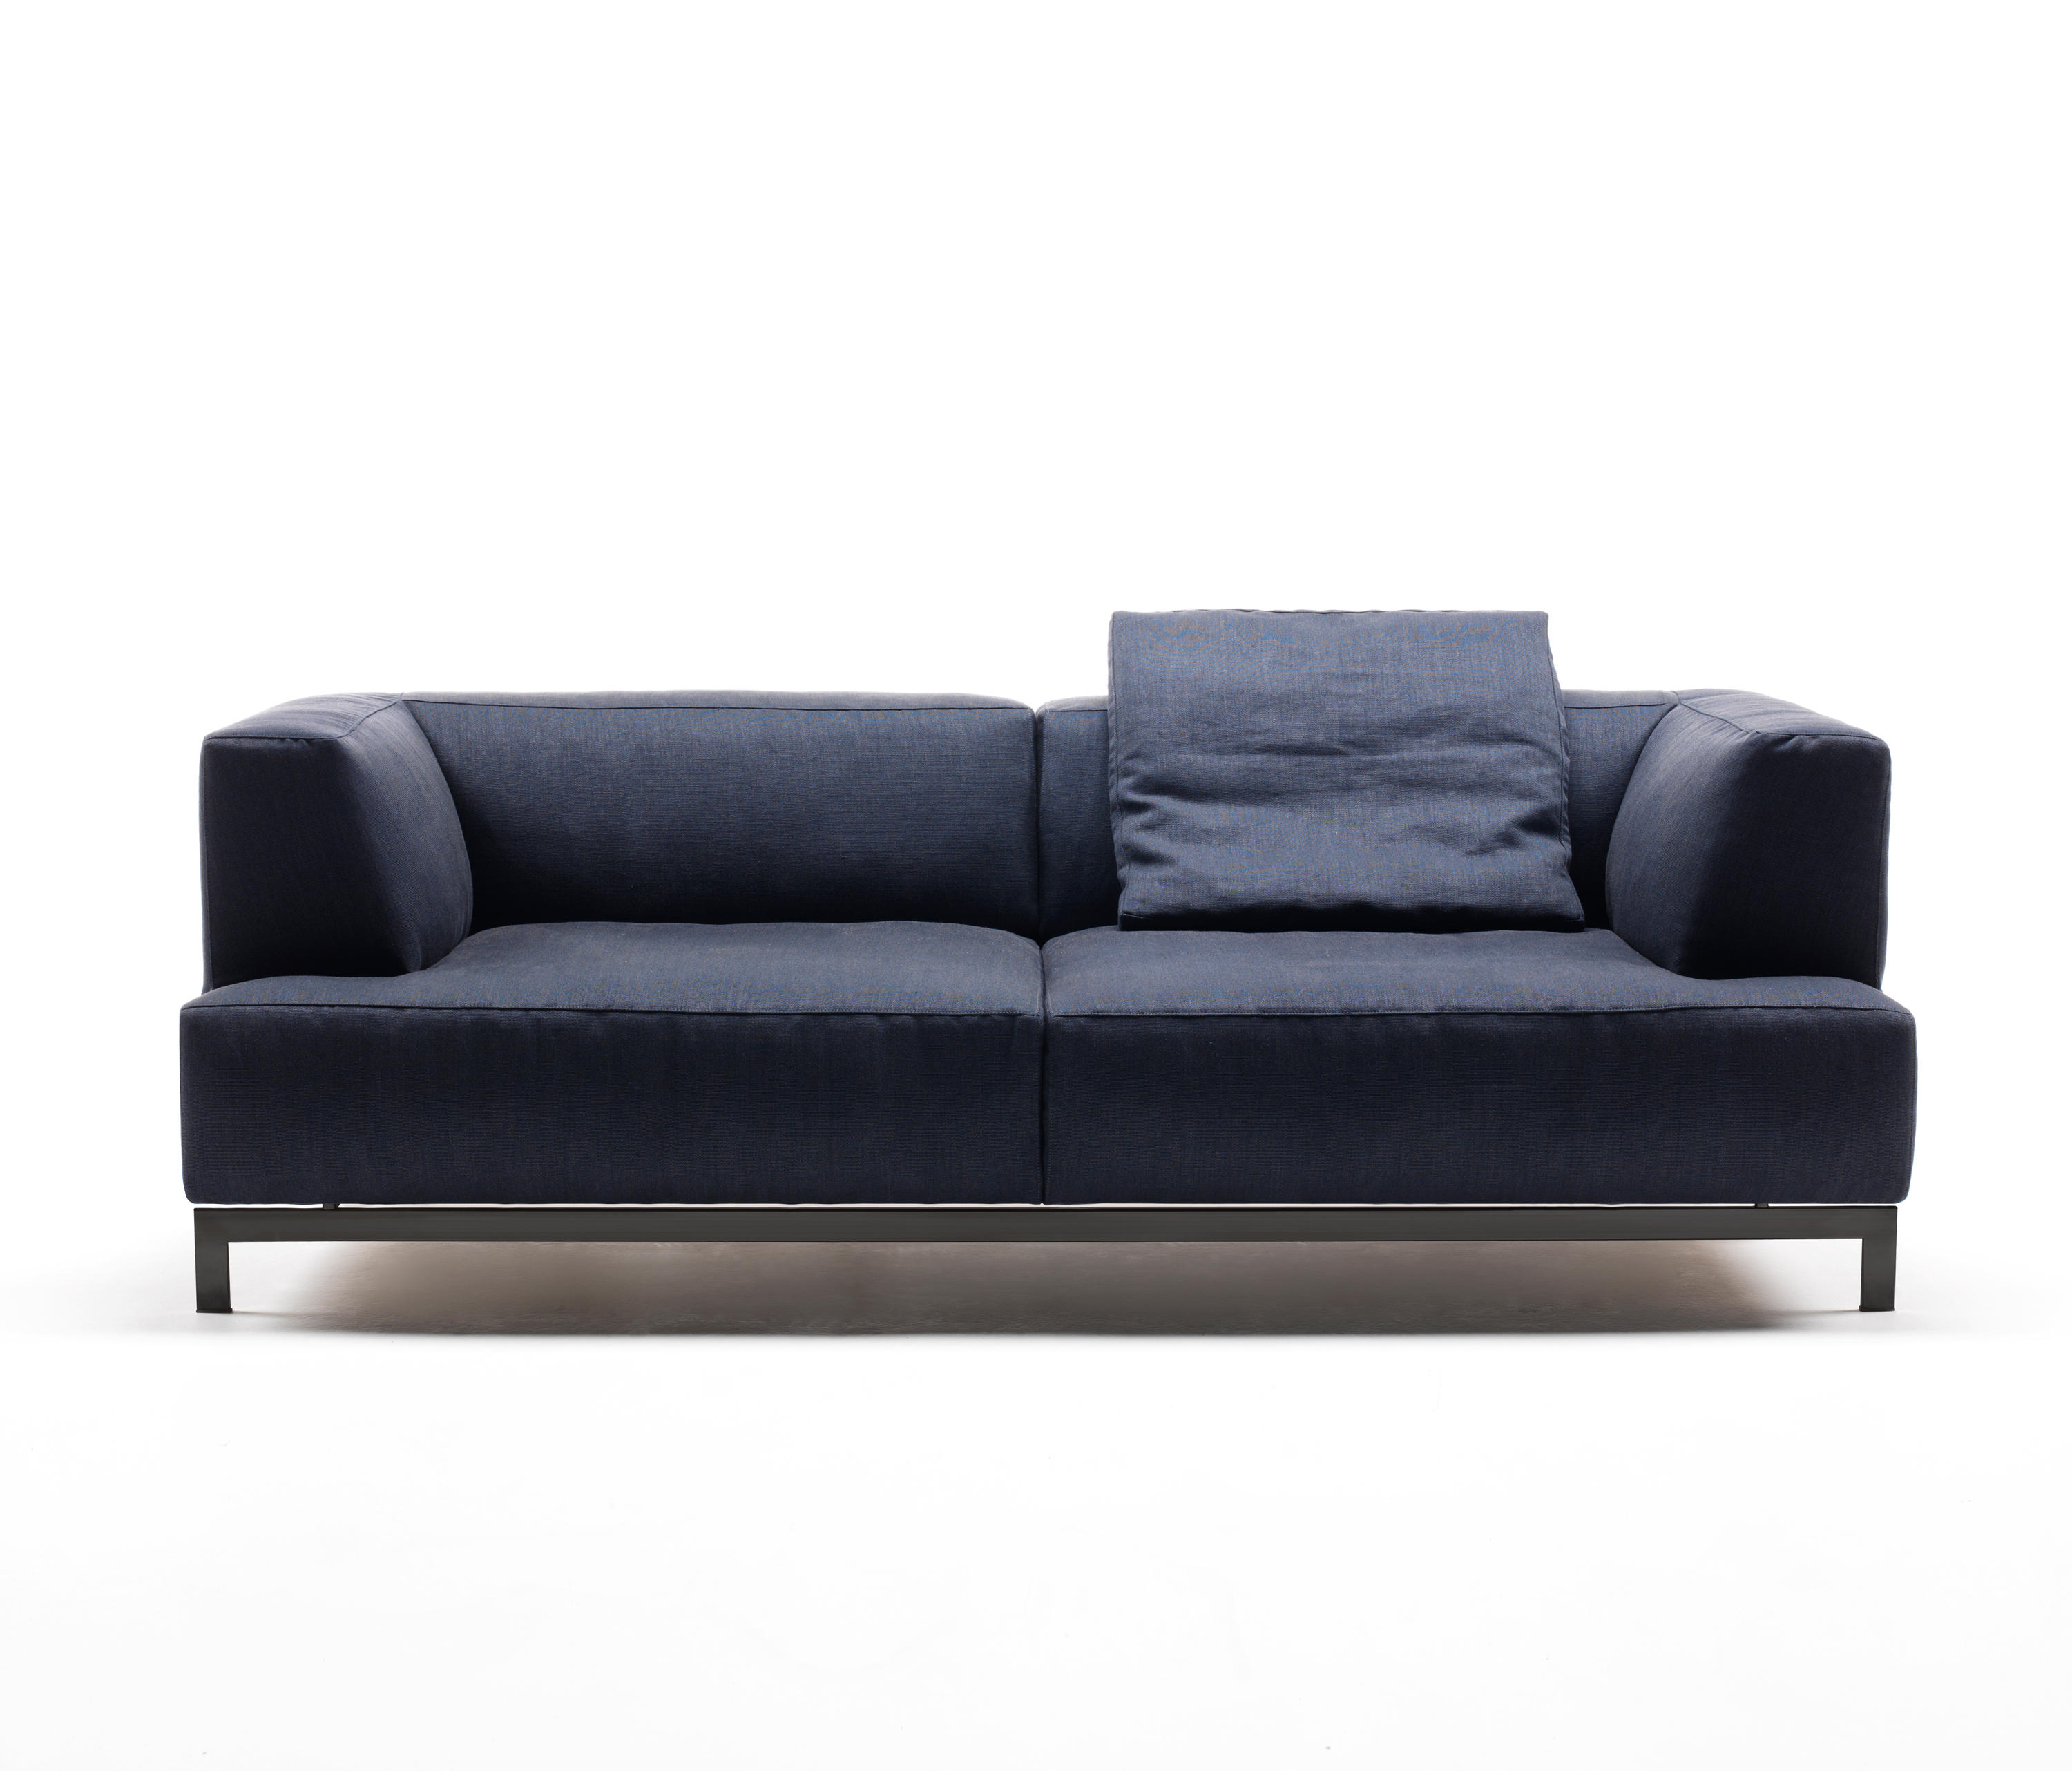 METROCUBO - Lounge sofas from Living Divani | Architonic